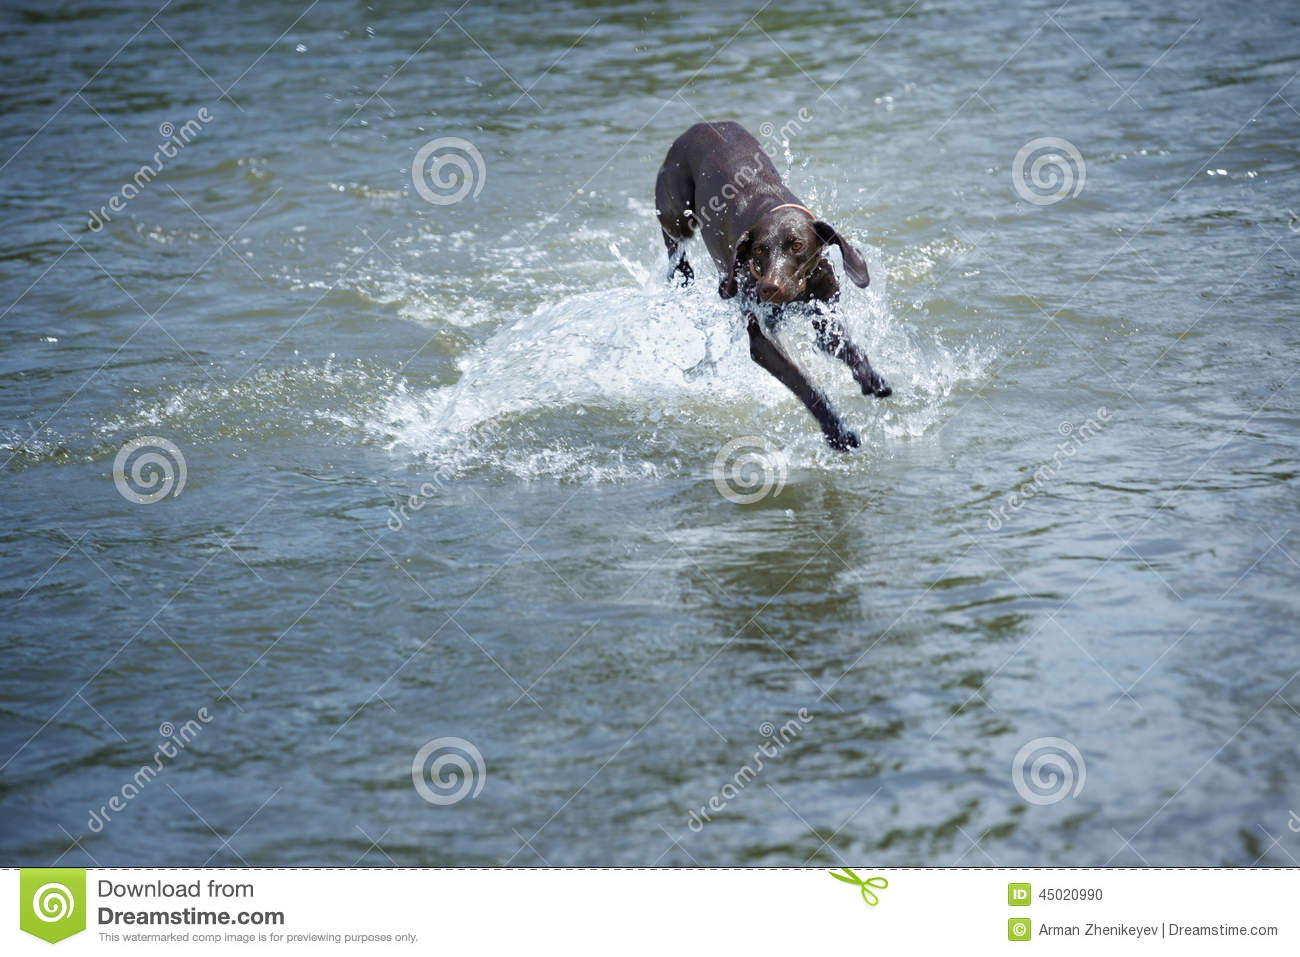 Dog in the water